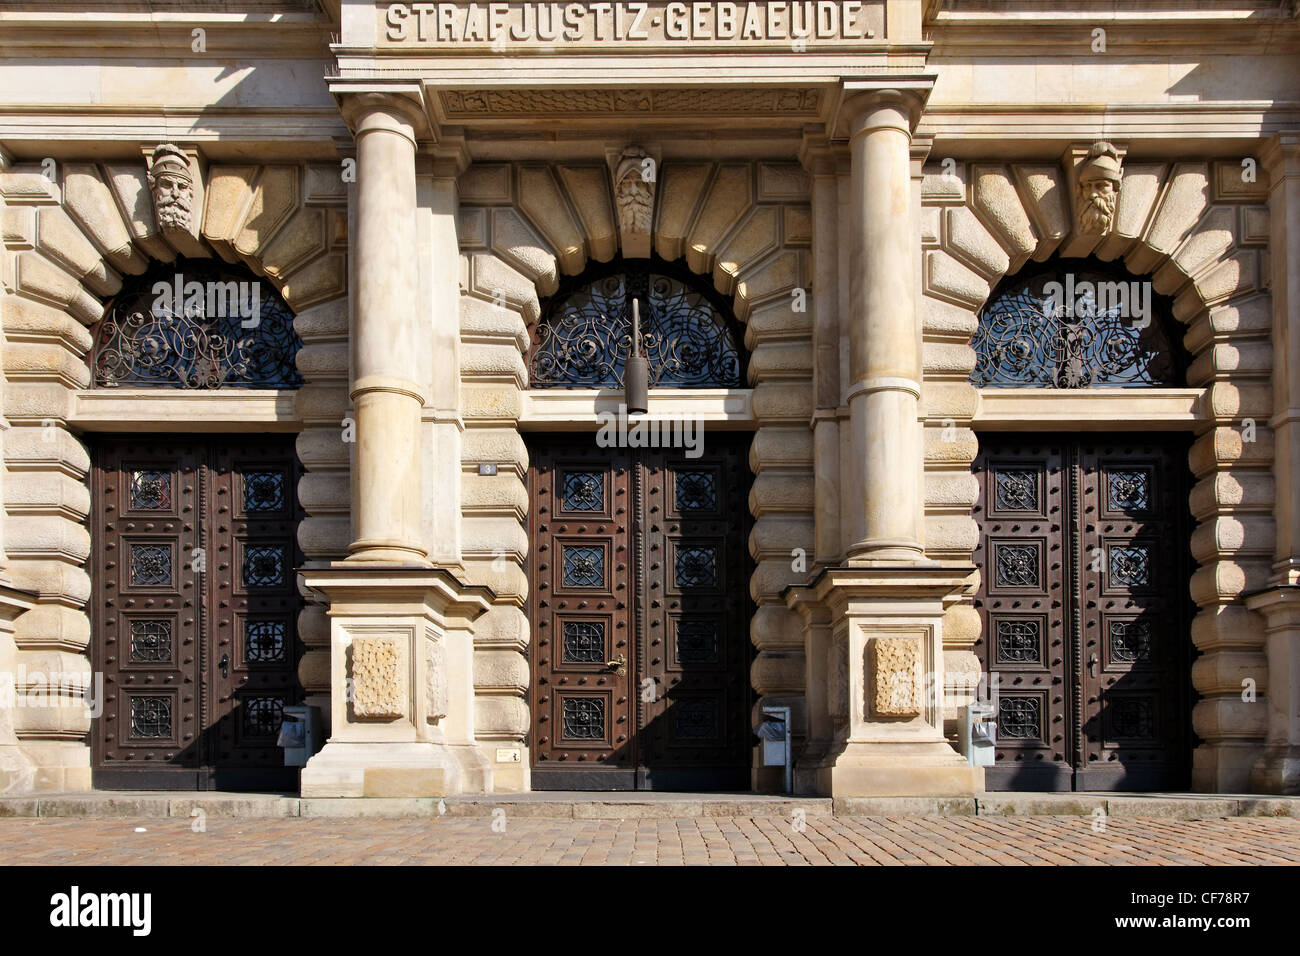 https www alamy com stock photo portal of the criminal justice court building of hamburg germany 43801163 html